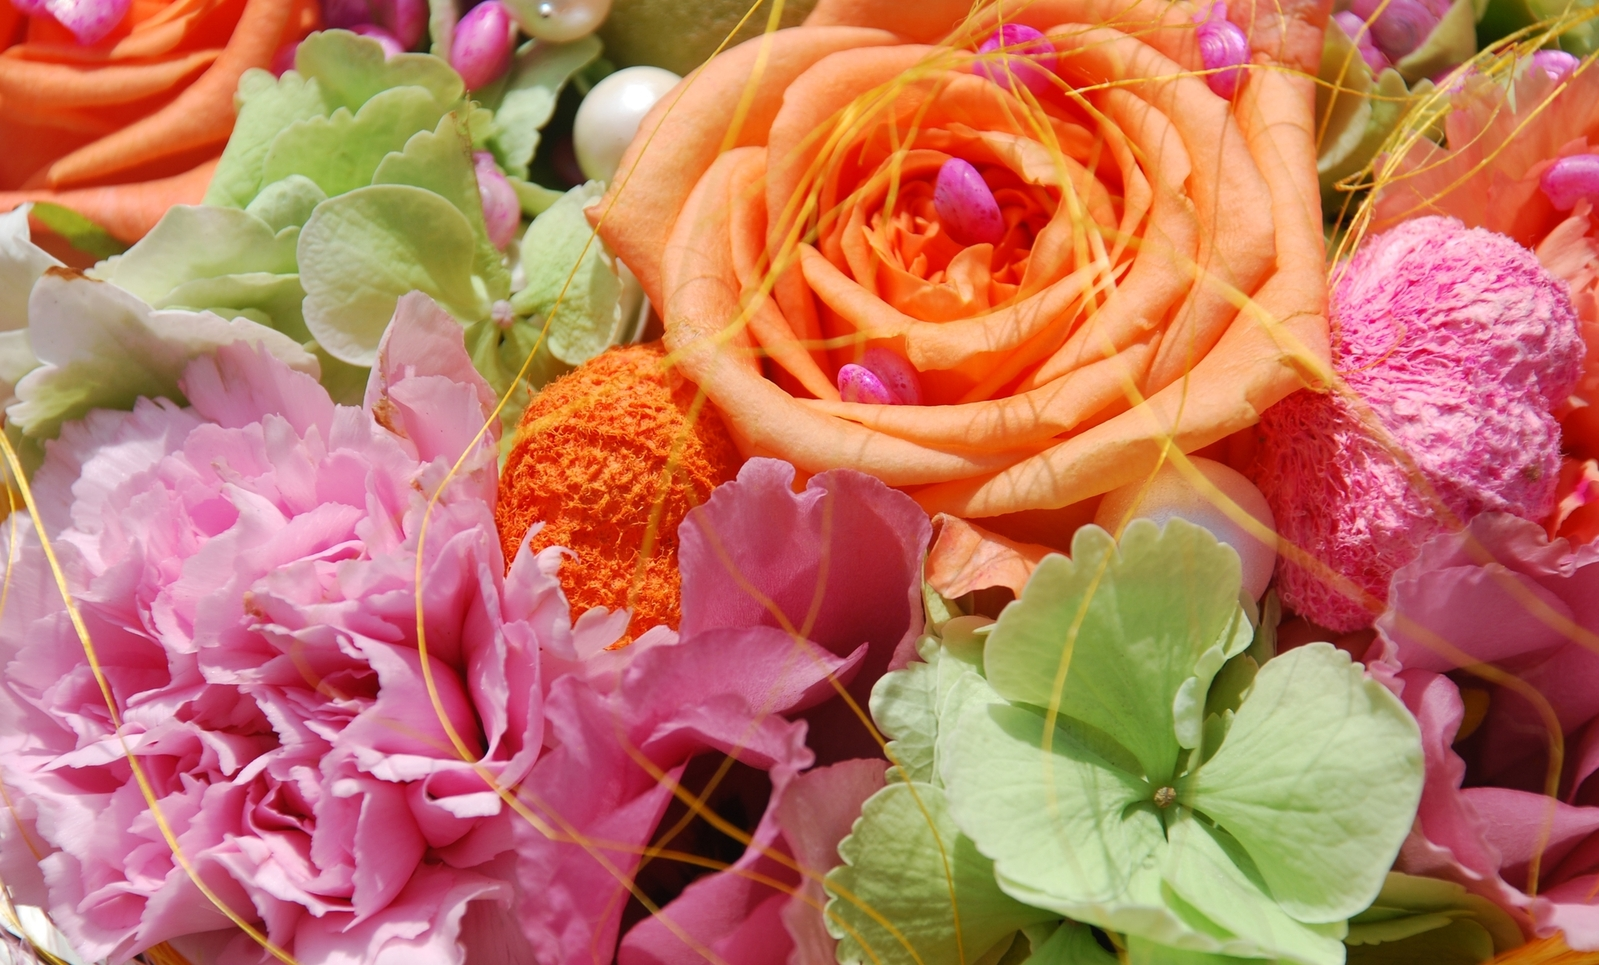 Common fresh flower questions and answers